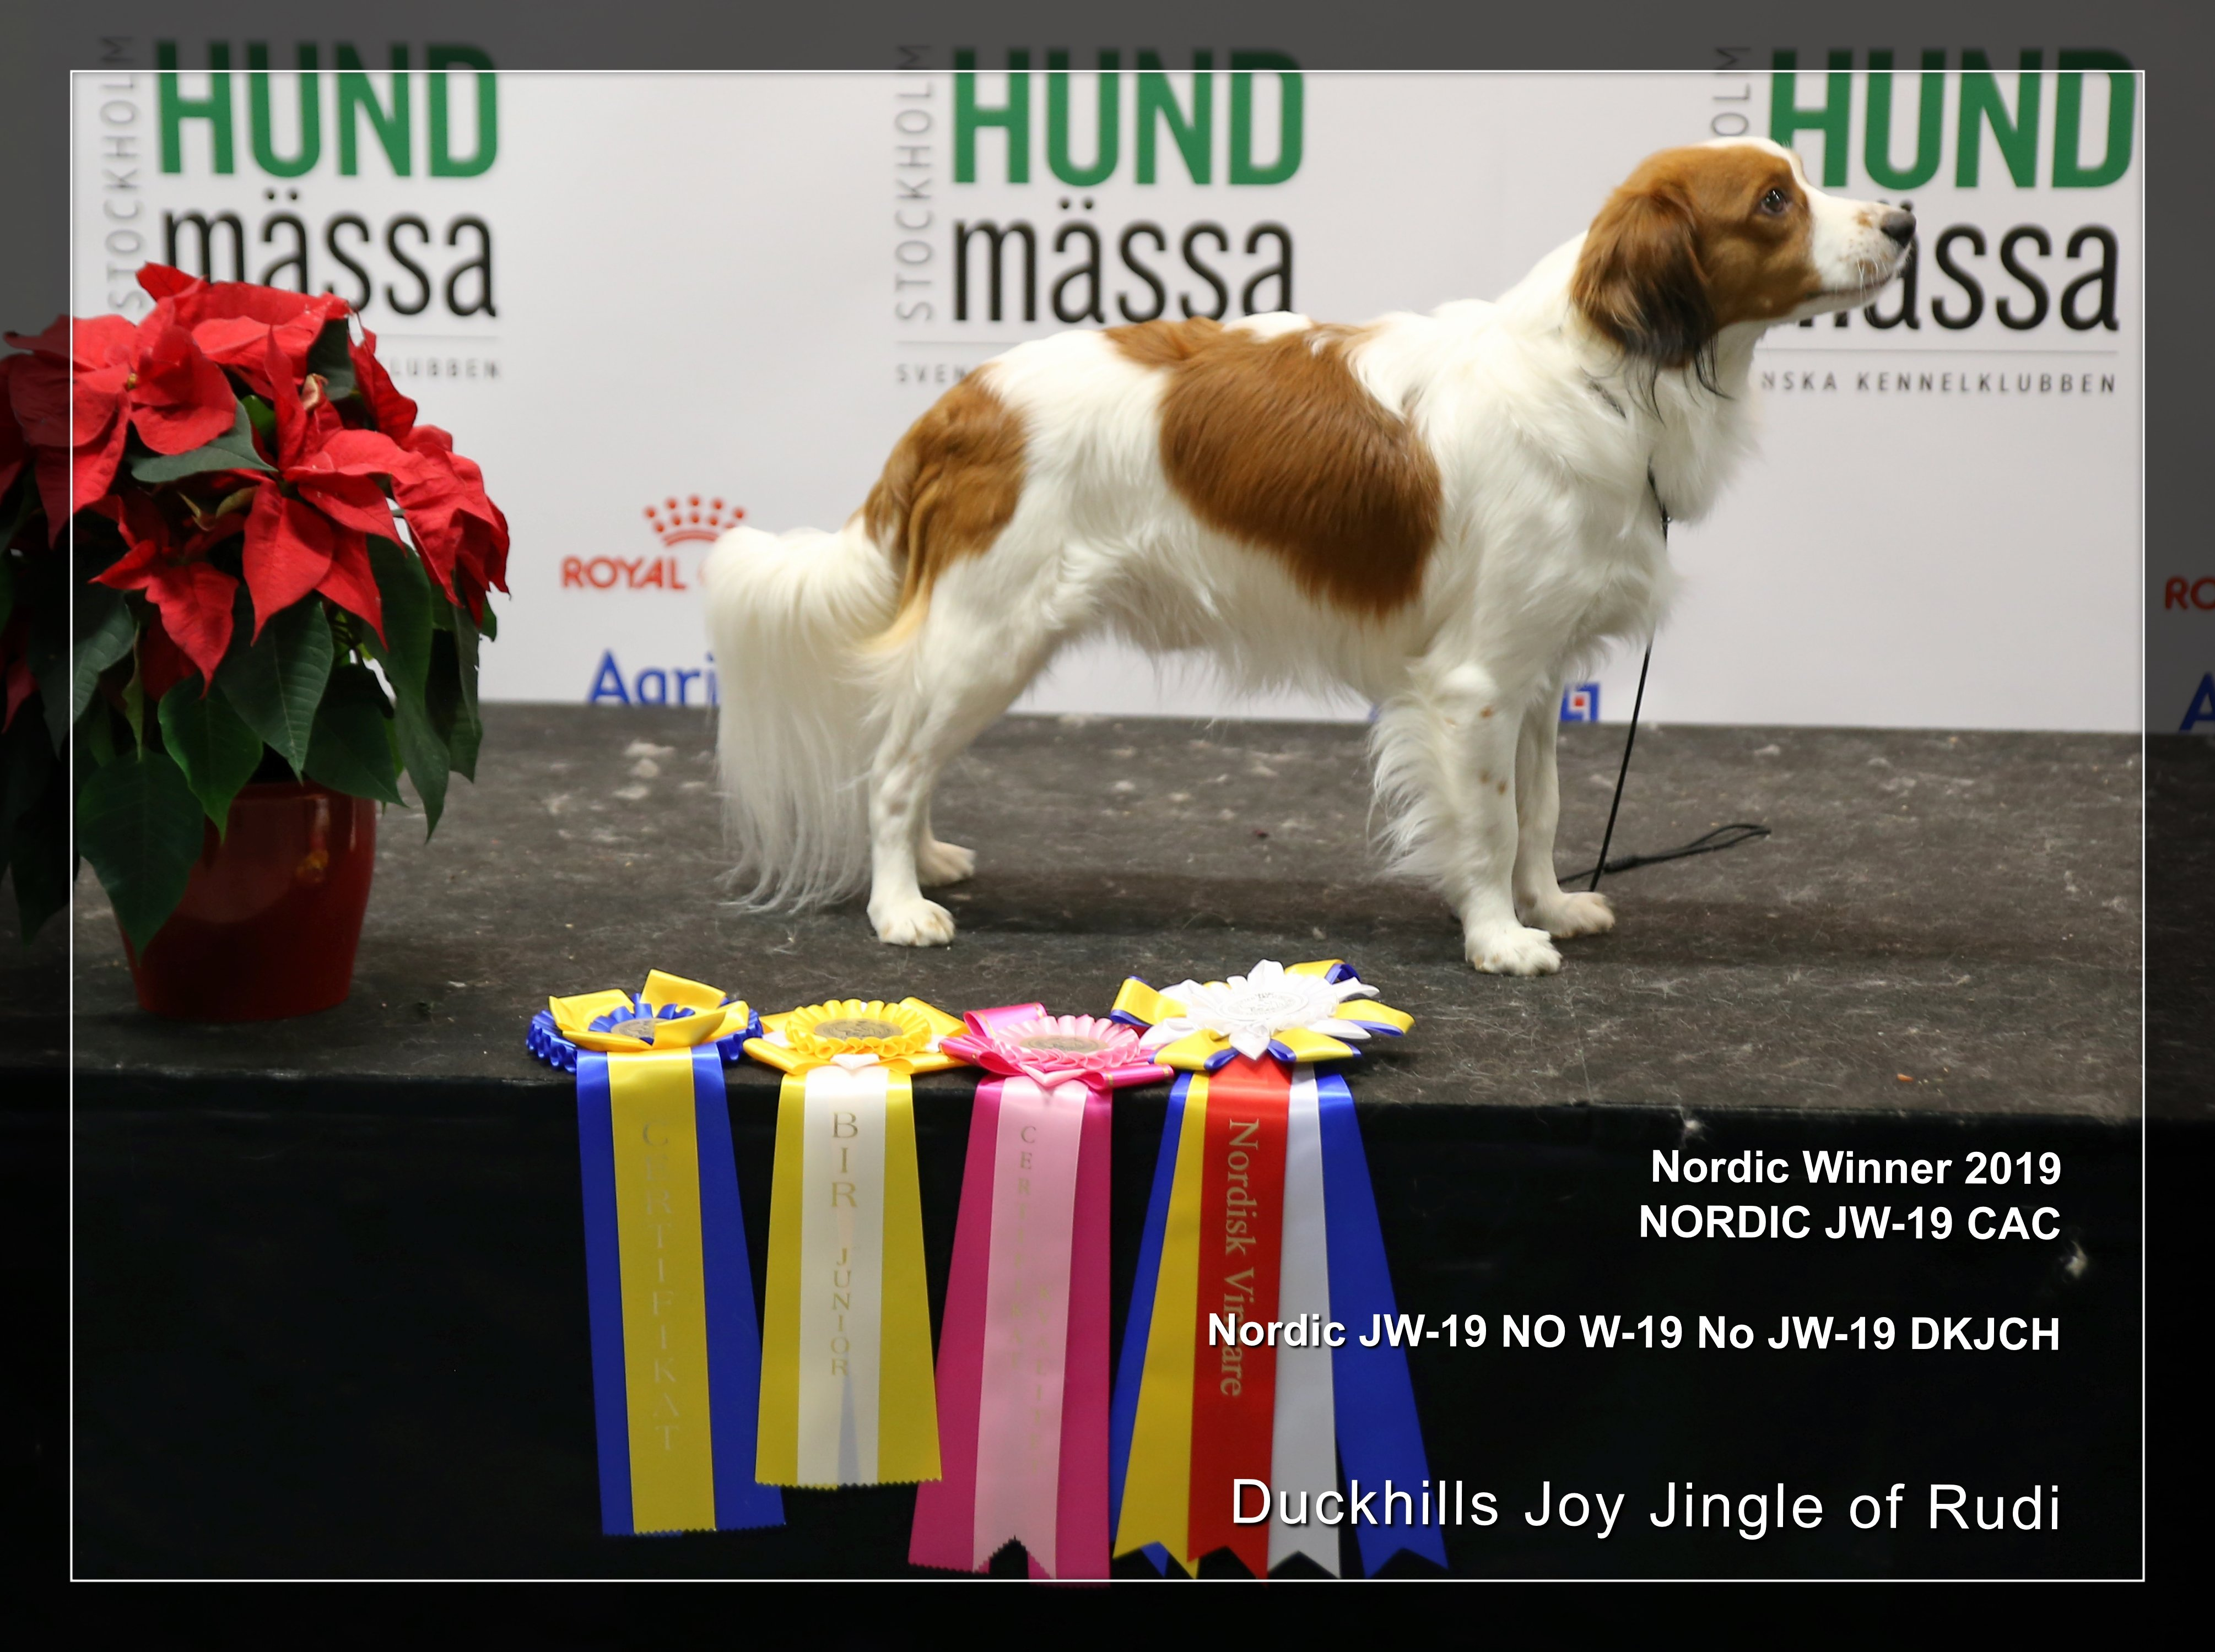 Nordic JuniorWInner 19 Duckhills Joy Jingle of Rudi